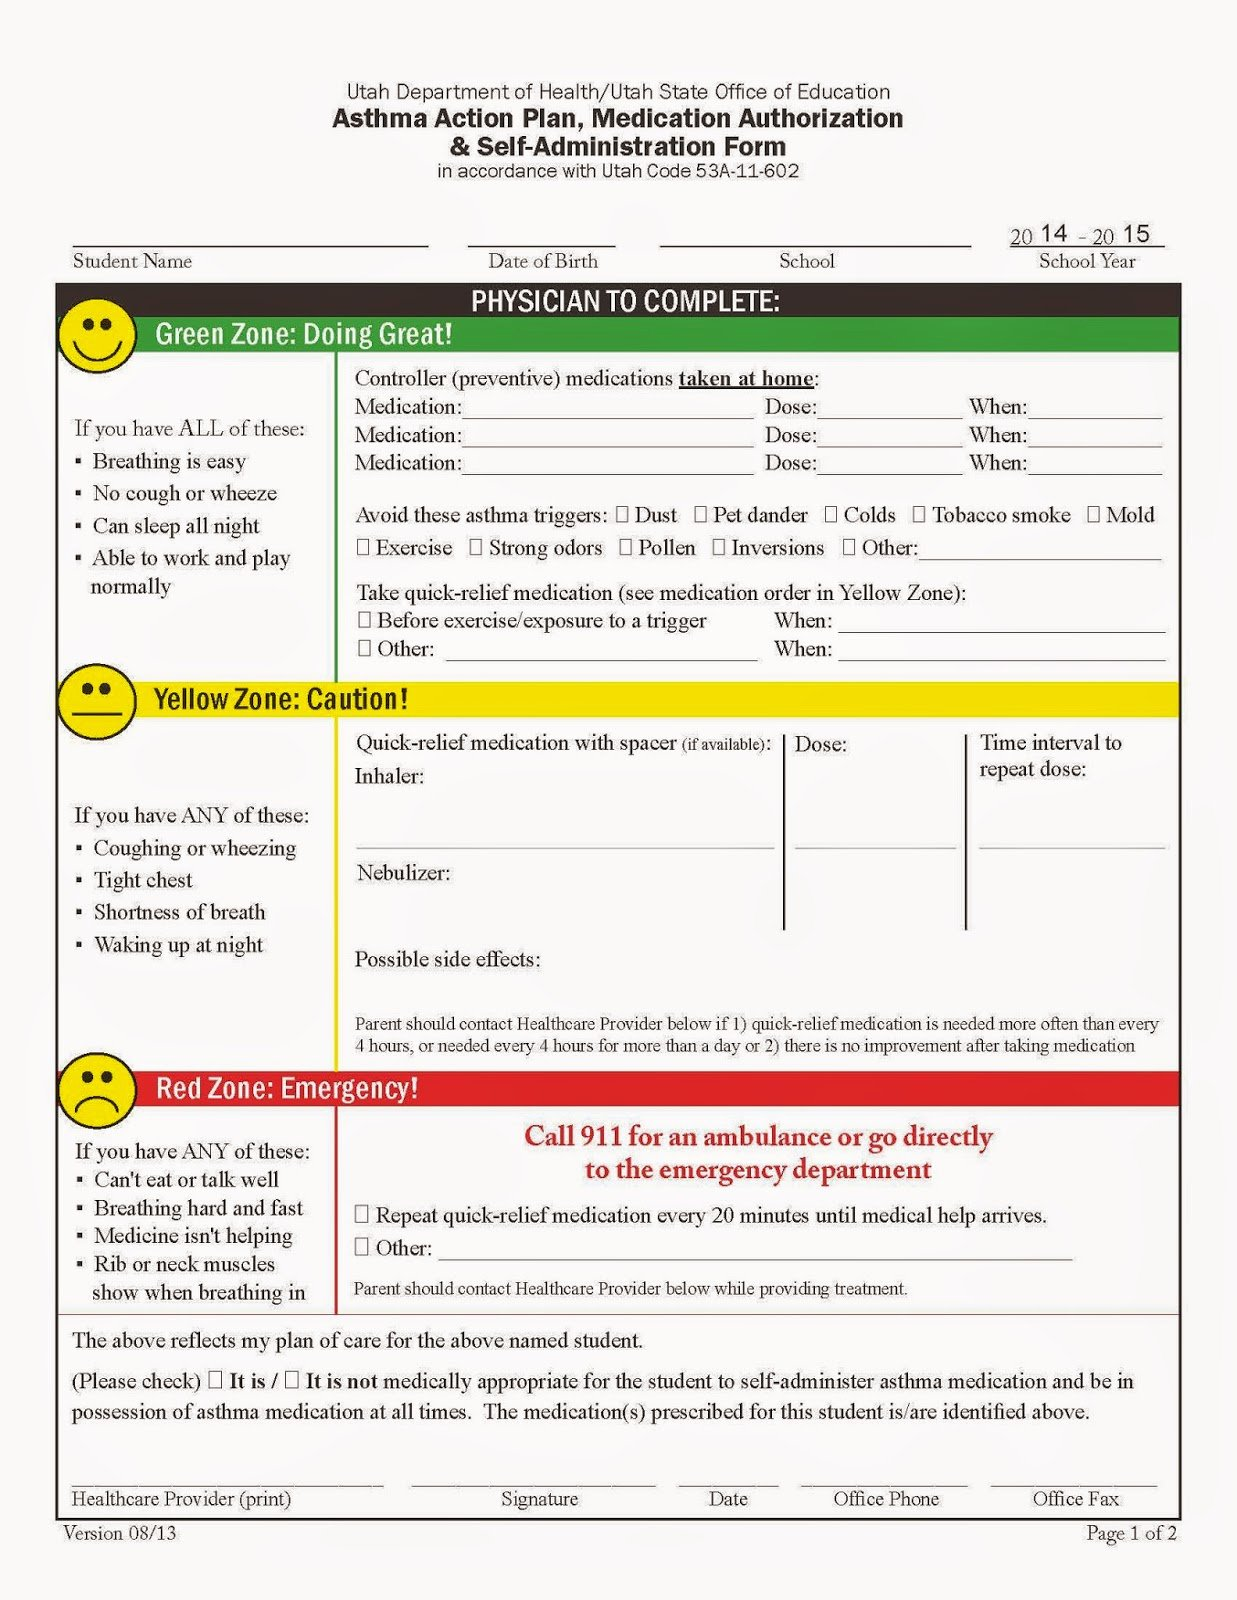 Asthma Action Plan form Fresh My Life as An asthma Mom June 2014